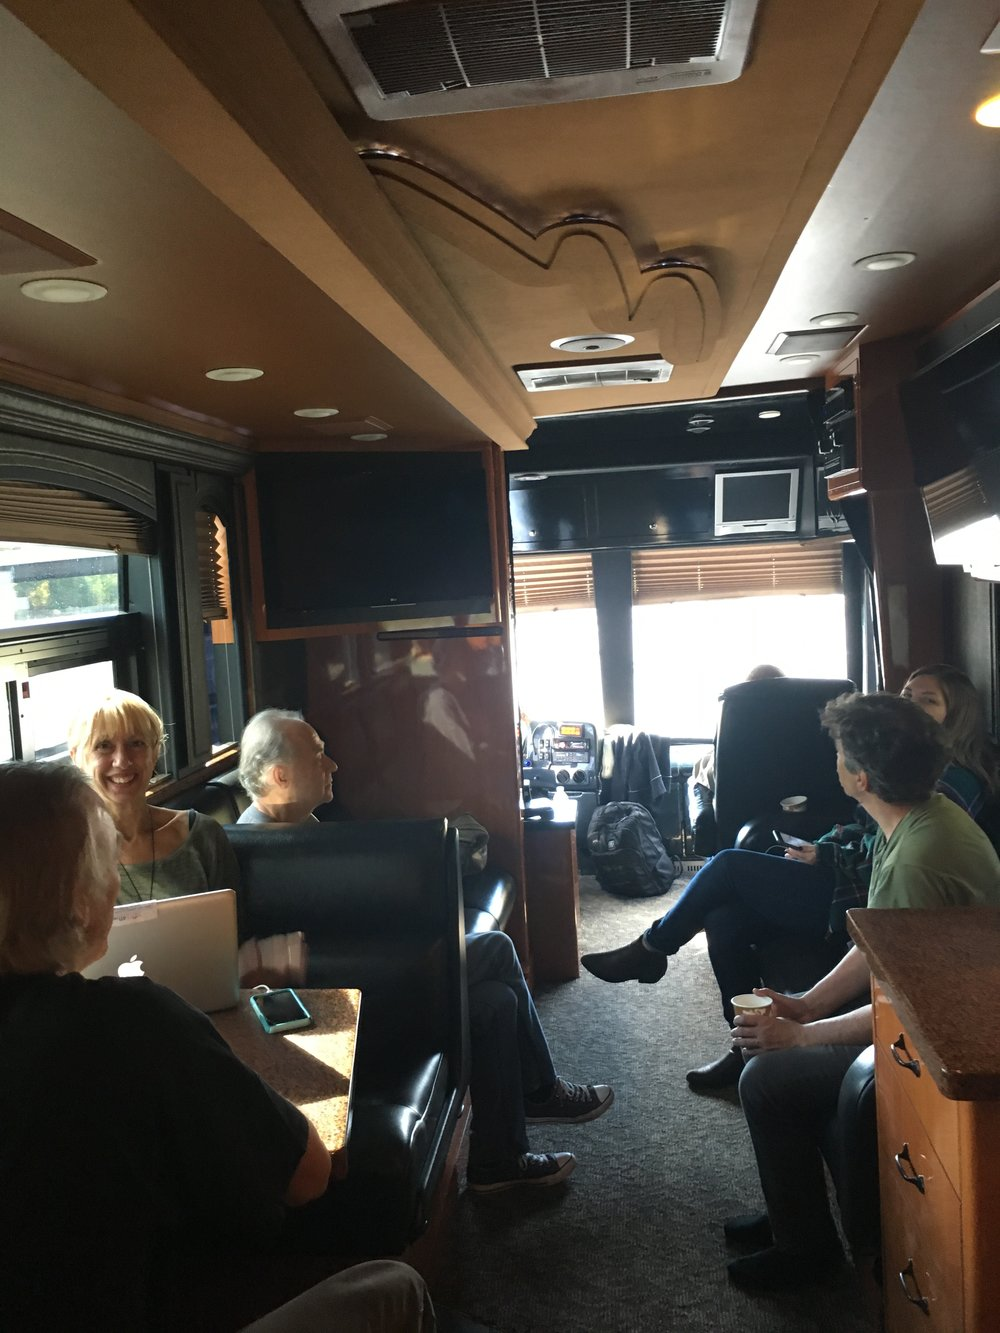 Monica Baker (JRS-USA) on the JRS tour bus (Photo by Deanna Howes)